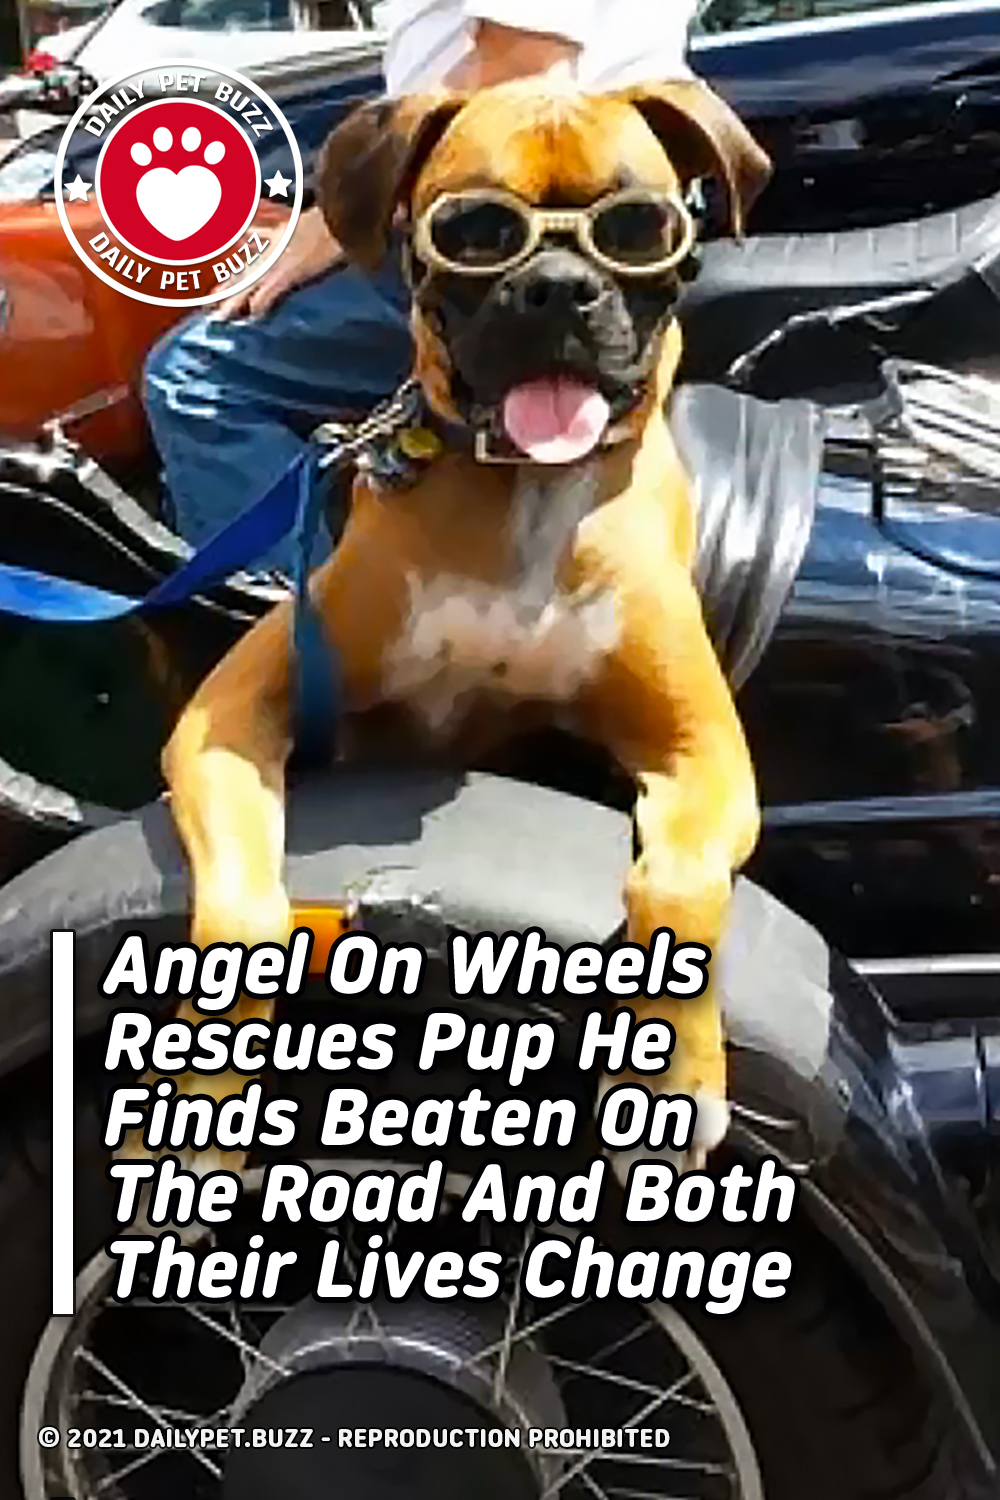 Angel On Wheels Rescues Pup He Finds Beaten On The Road And Both Their Lives Change